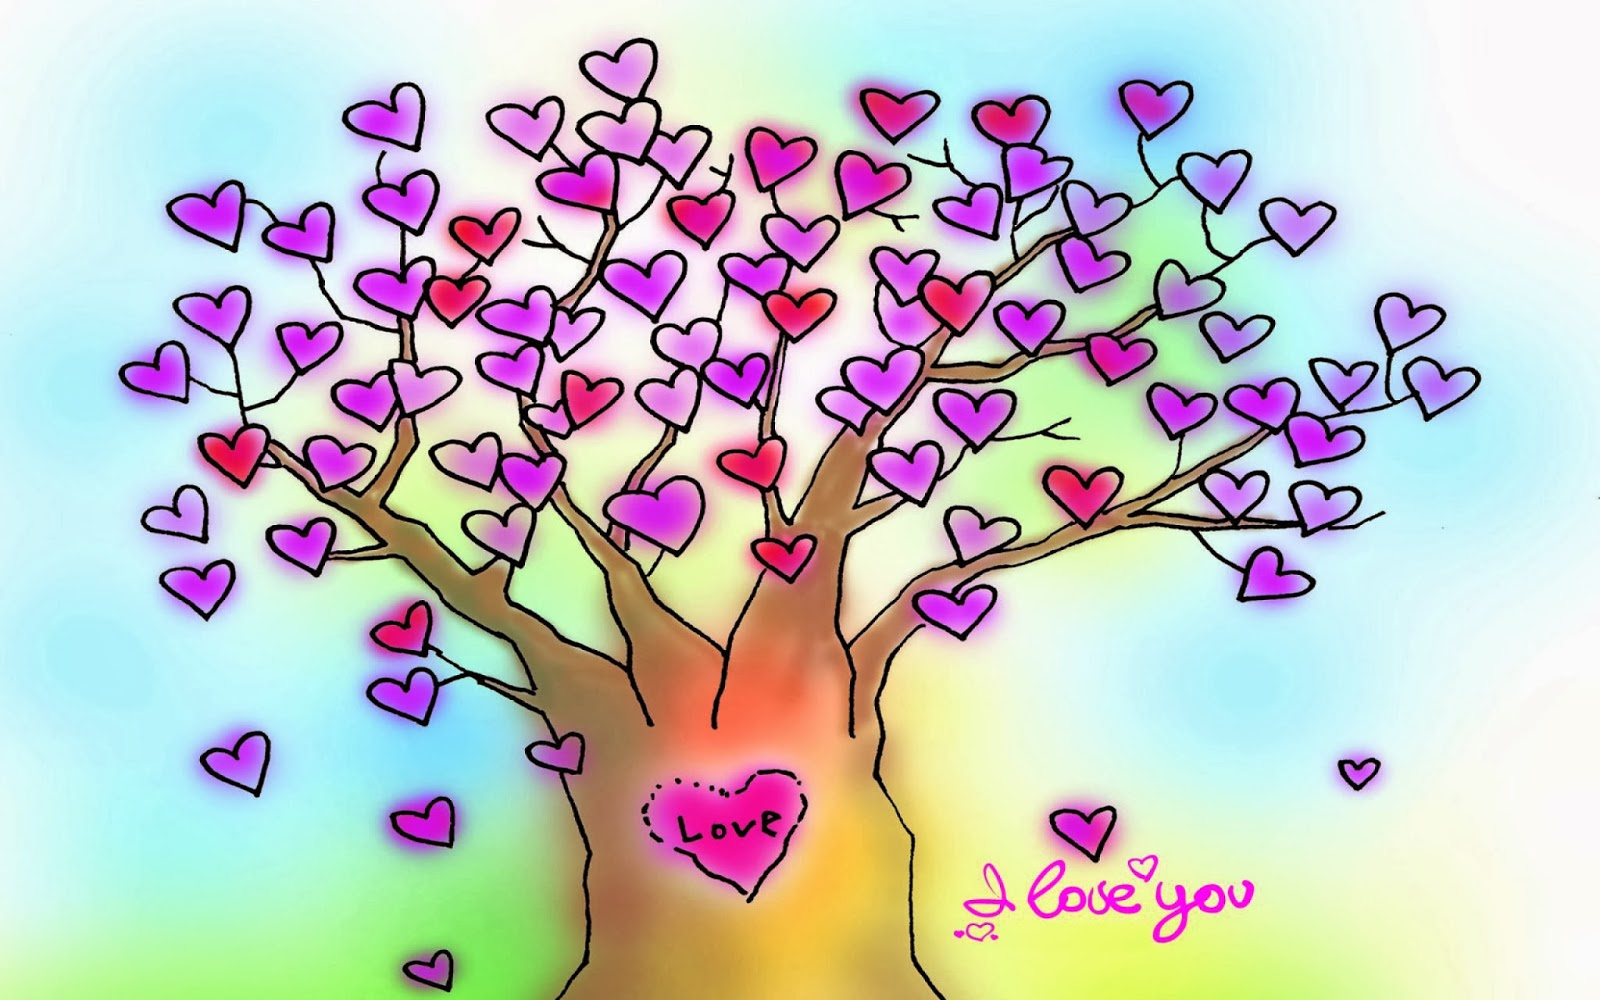 Hearts-Tree-I-love-you-HD-images.jpg